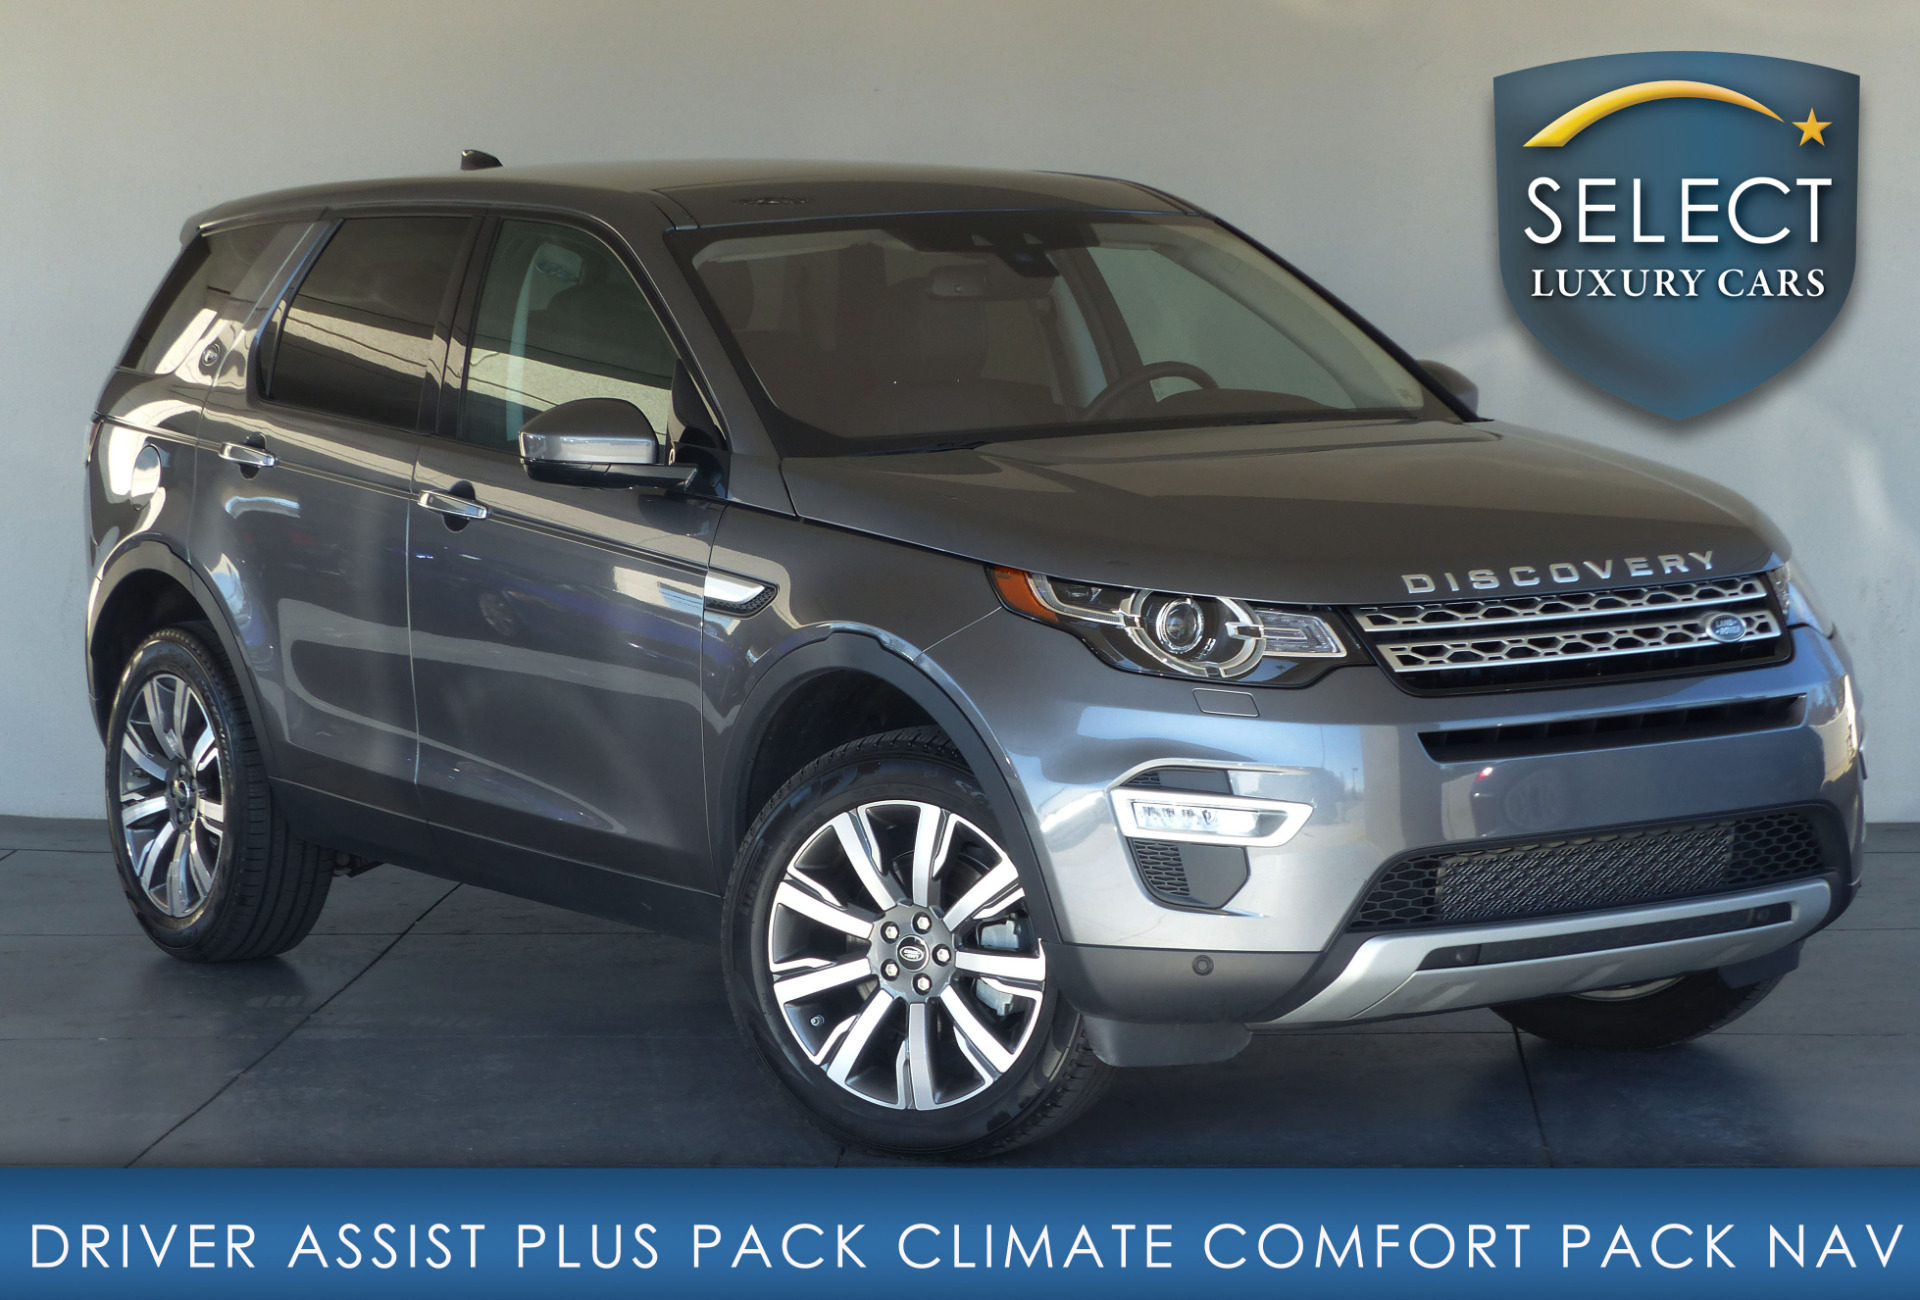 used 2017 land rover discovery sport hse luxury marietta ga. Black Bedroom Furniture Sets. Home Design Ideas